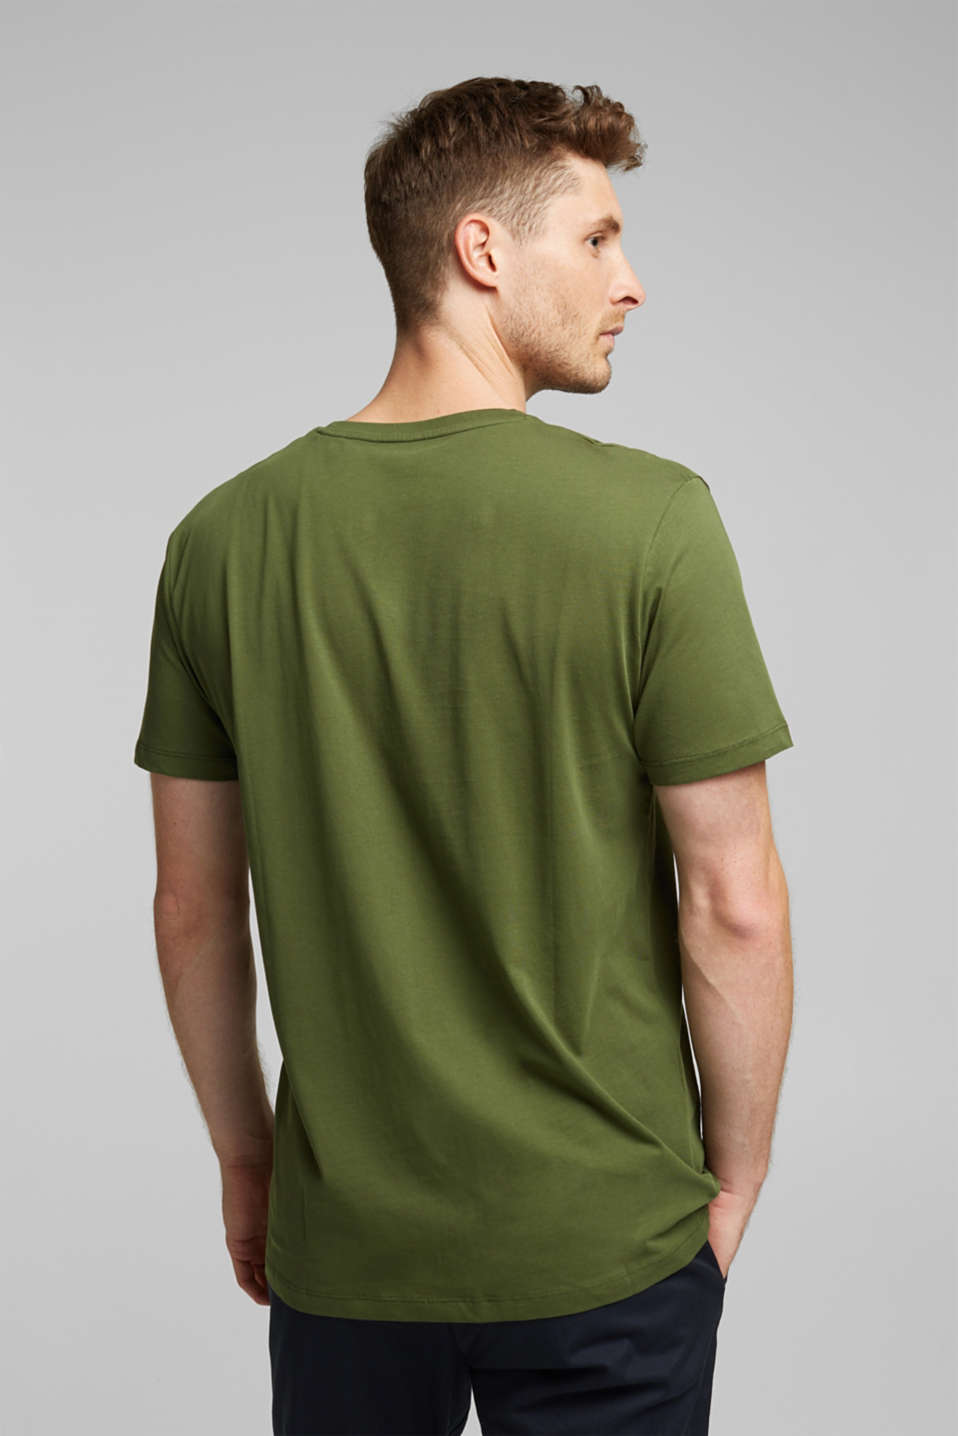 Jersey T-shirt in 100% cotton, KHAKI GREEN, detail image number 3